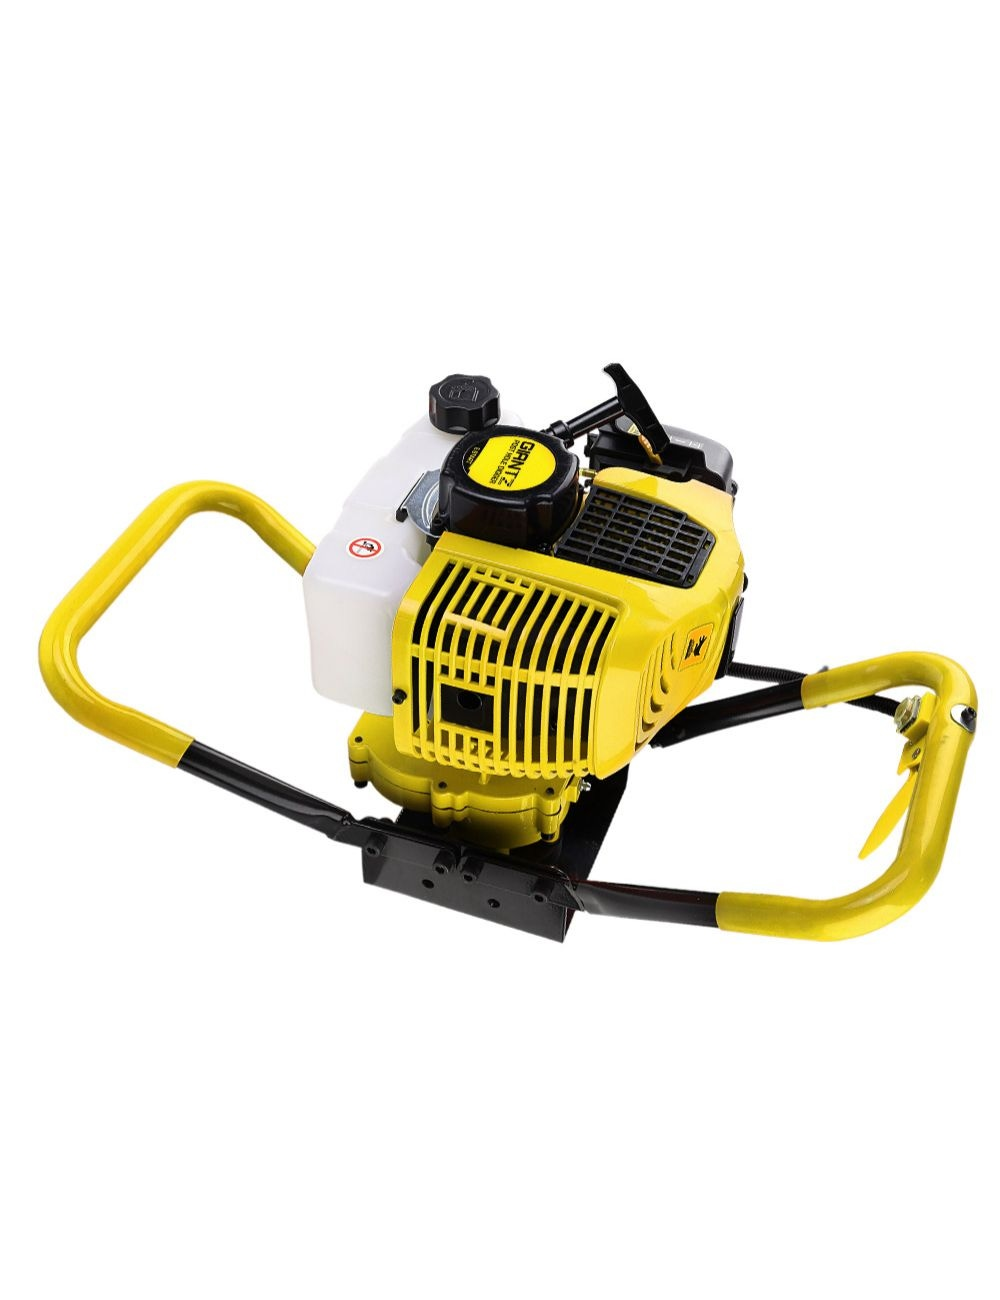 Giantz Post Hole Digger 66cc Petrol Only Engine Motor Earth Auger Borer Fence - Yellow - One Size